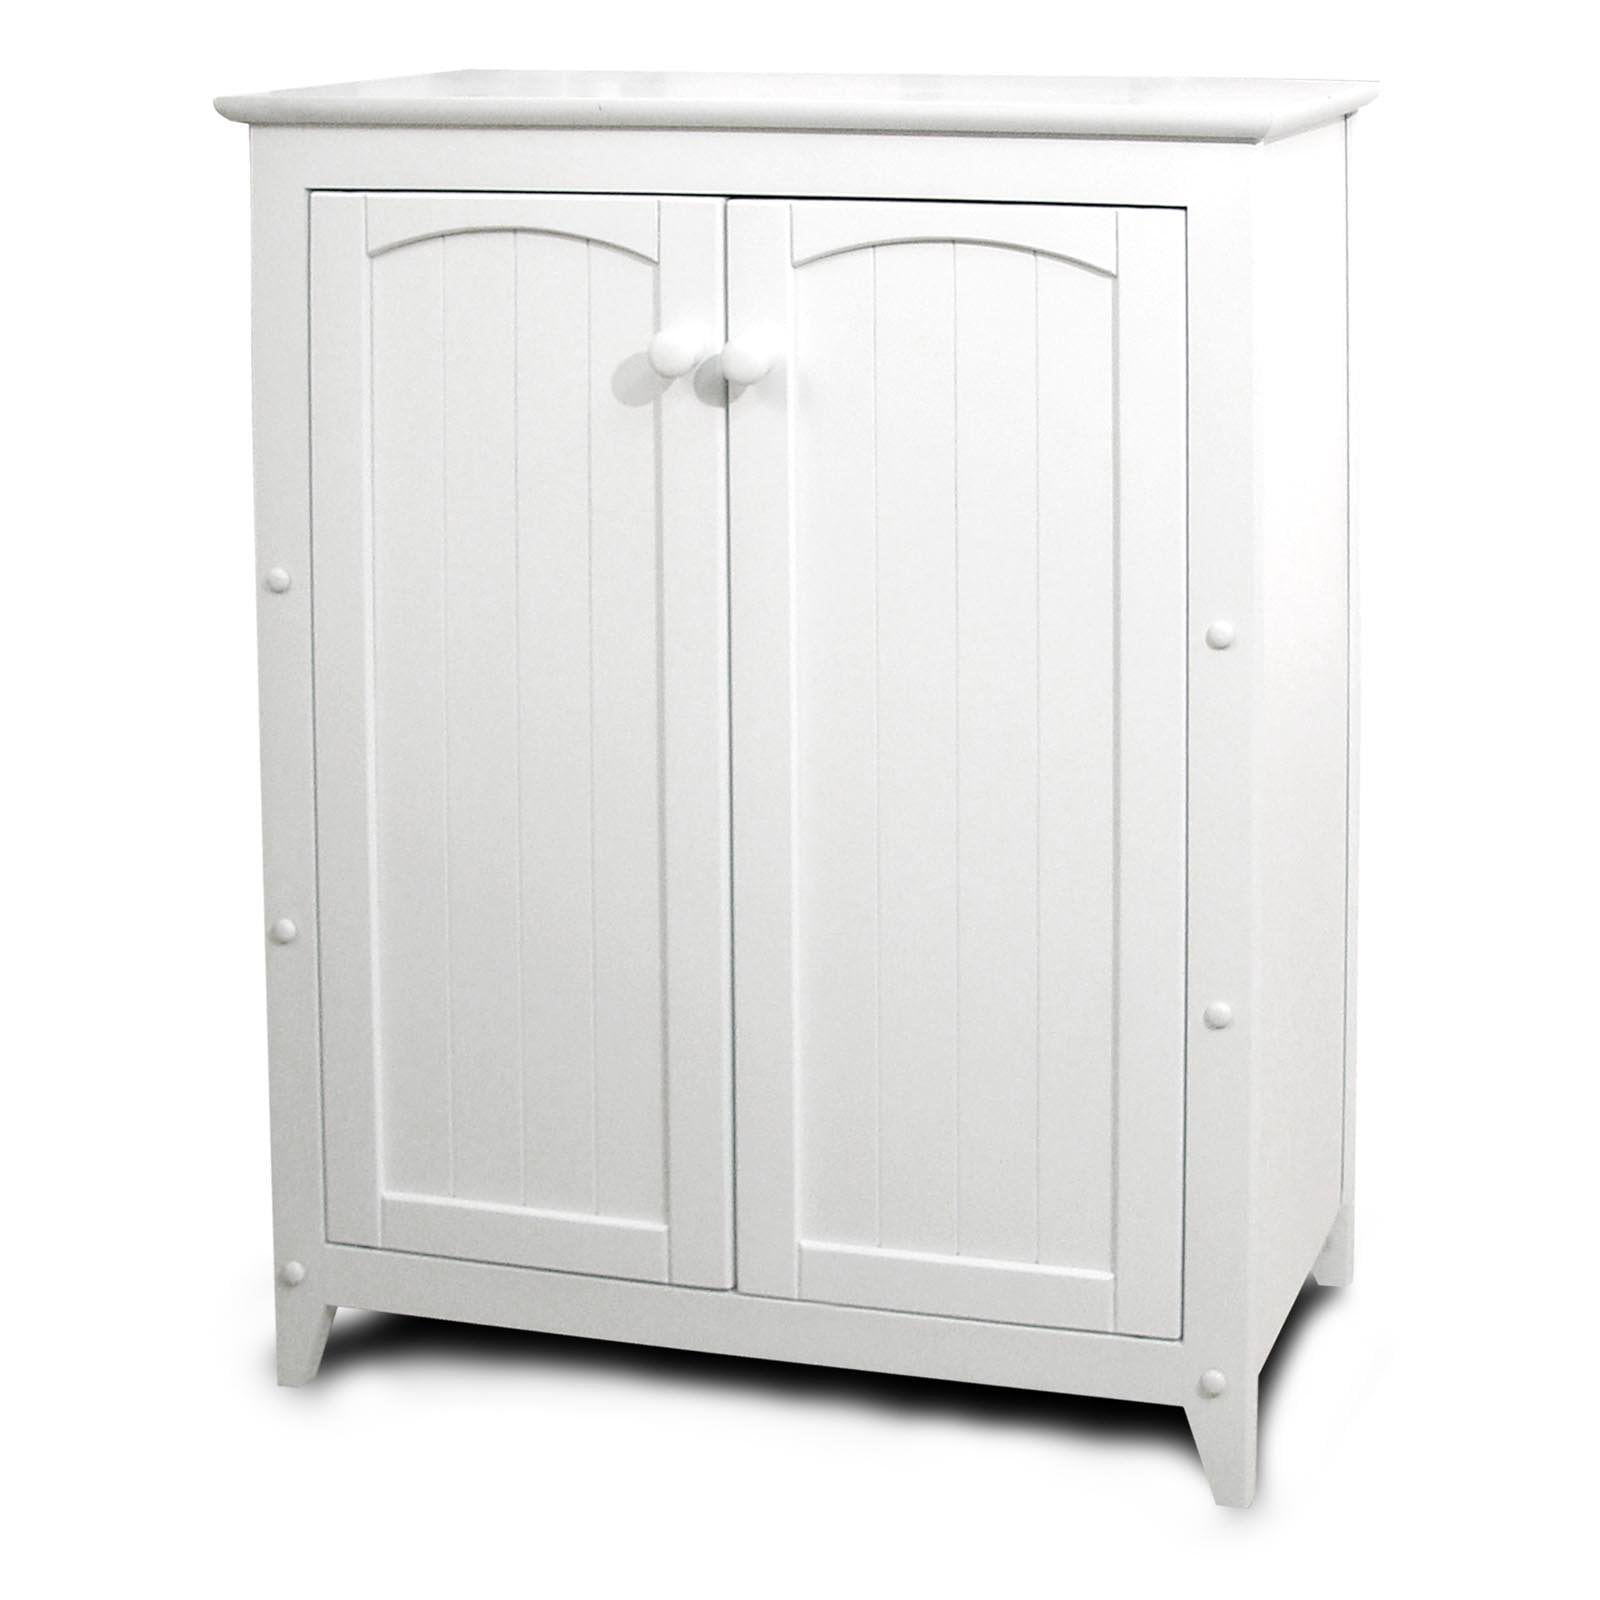 Charmant Catskill White All Purpose Kitchen Storage Cabinet With Double Doors    Walmart.com